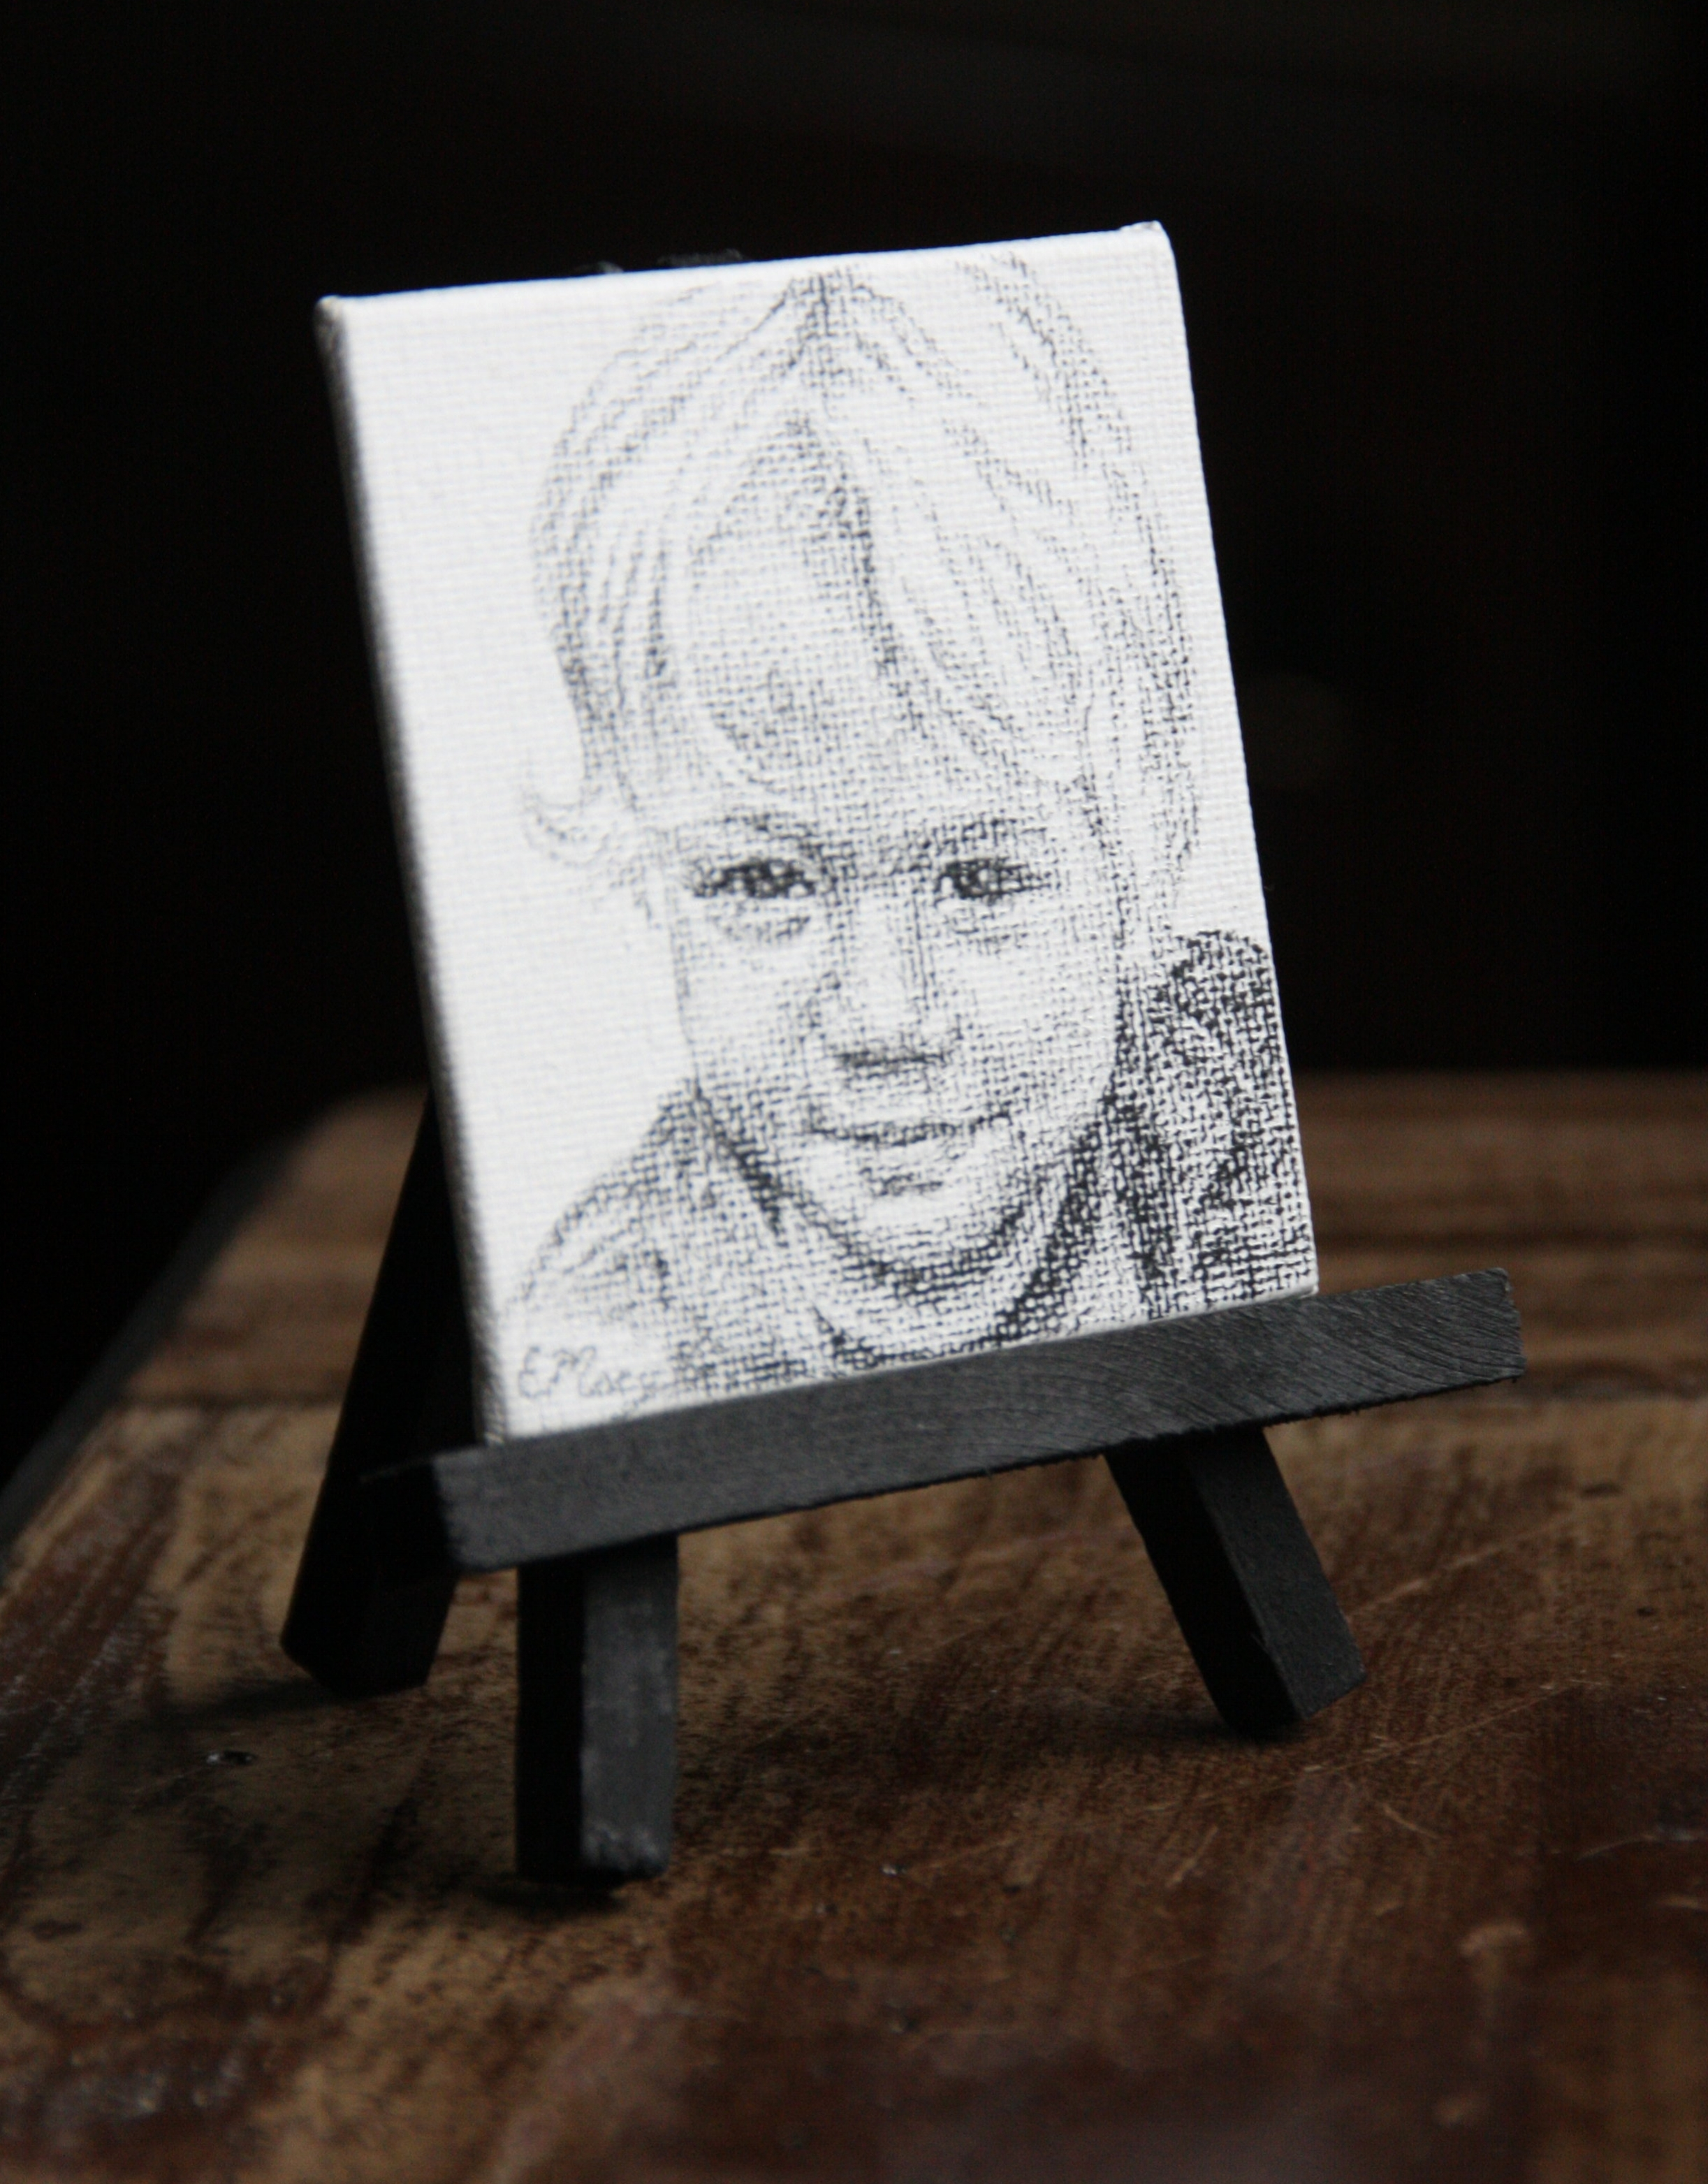 A 3x3 inch charcoal portrait with a black easel perfect for display.